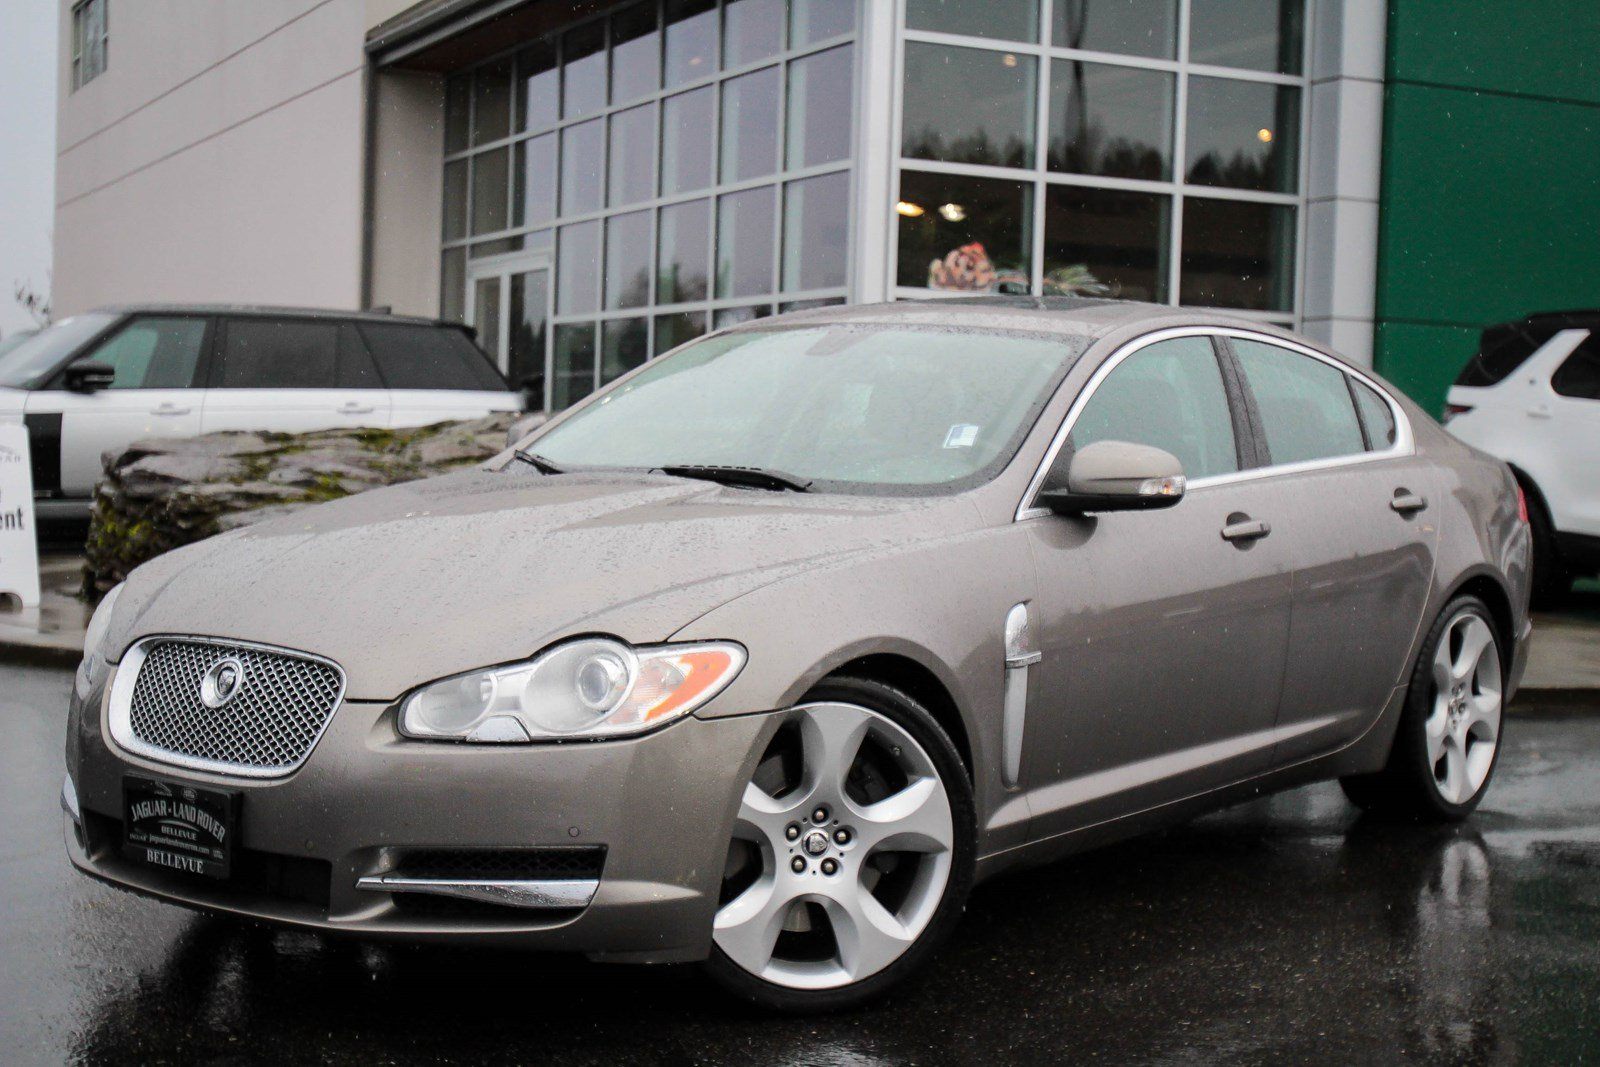 Pre-Owned 2009 Jaguar XF Supercharged